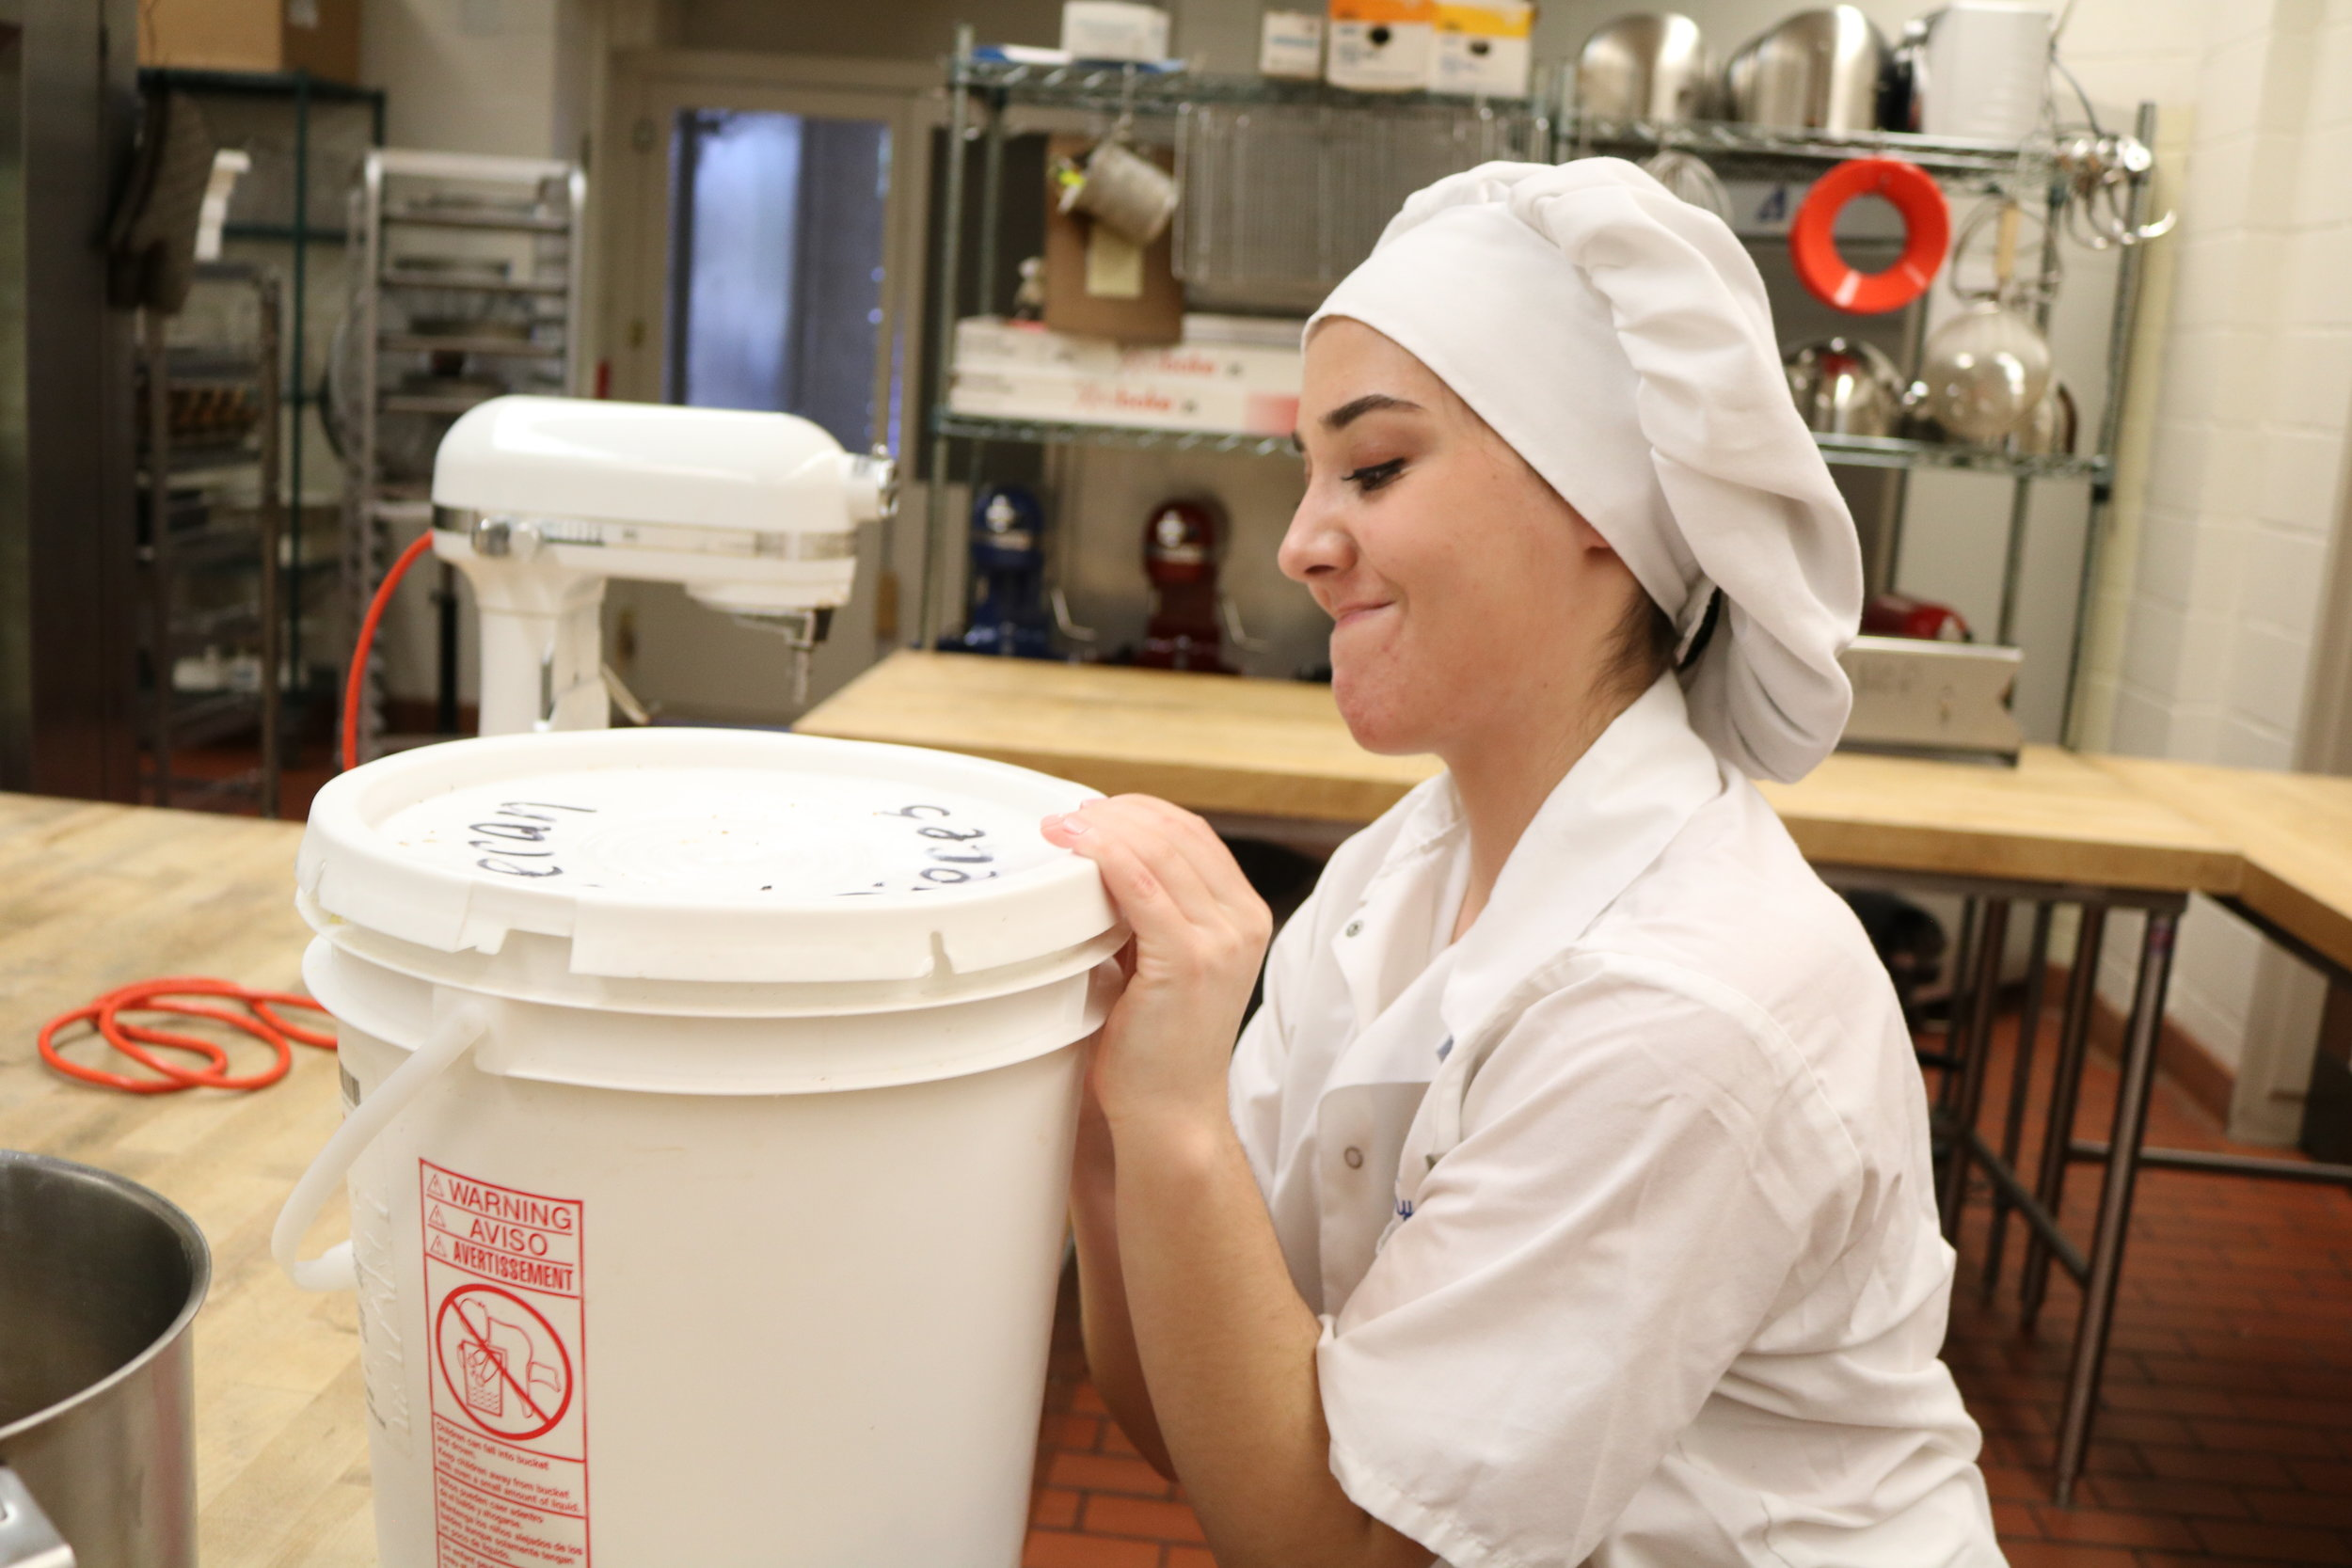 Ally Berrich, 17, works to open a tub of dough to bake for a commercial order in her baking and pastry course at the Center of Applied Technology North in Severn, Md., on May 5, 2016.